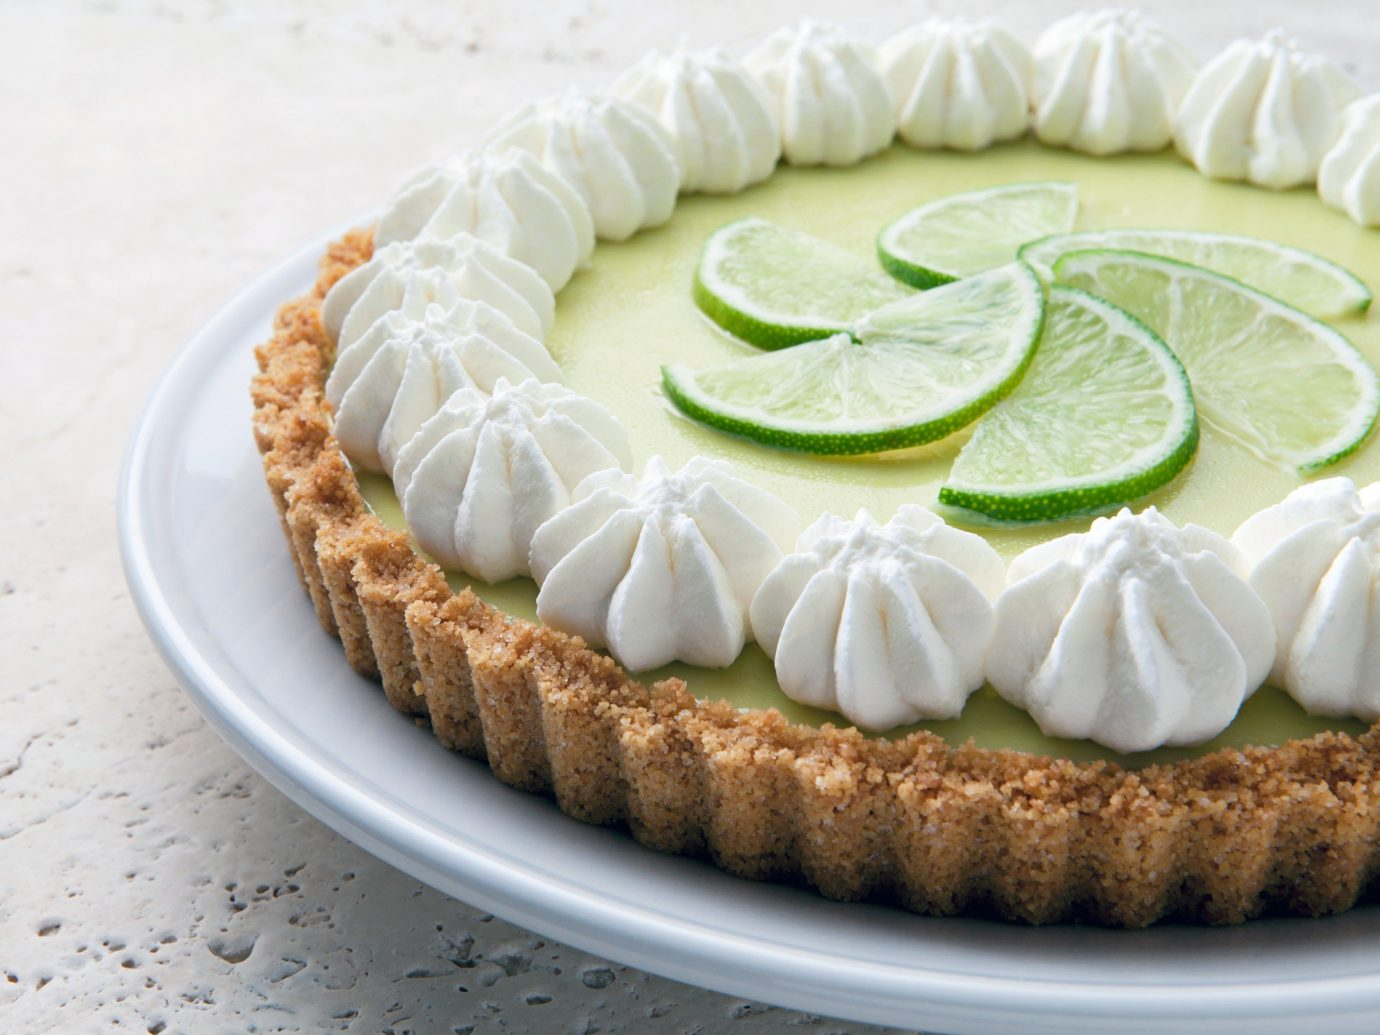 Food + Drink plate food dish dessert slice key lime plant produce sour cream citrus lime land plant baked goods fruit torte cream pie coconut icing key lime pie pie flowering plant cheesecake flavor whipped cream sliced cream